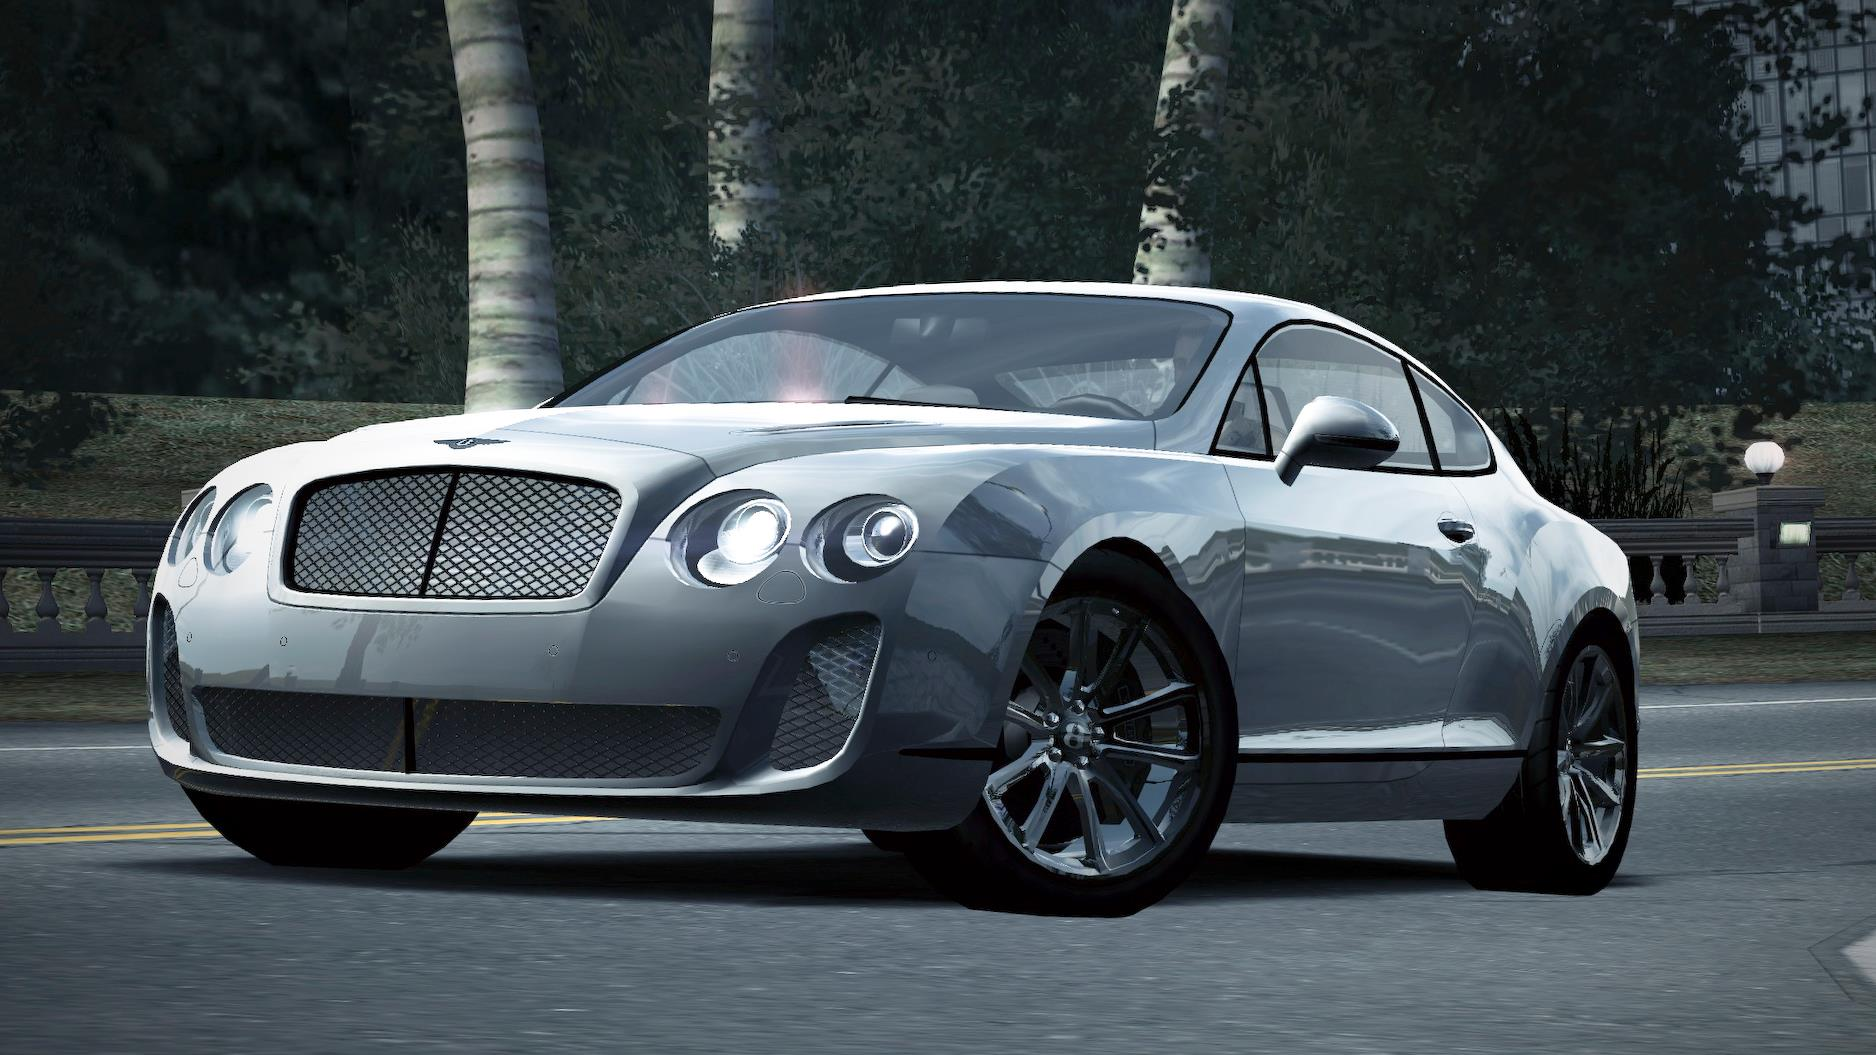 Image Carrelease Bentley Continental Supersports Coupe White 4 Jpg